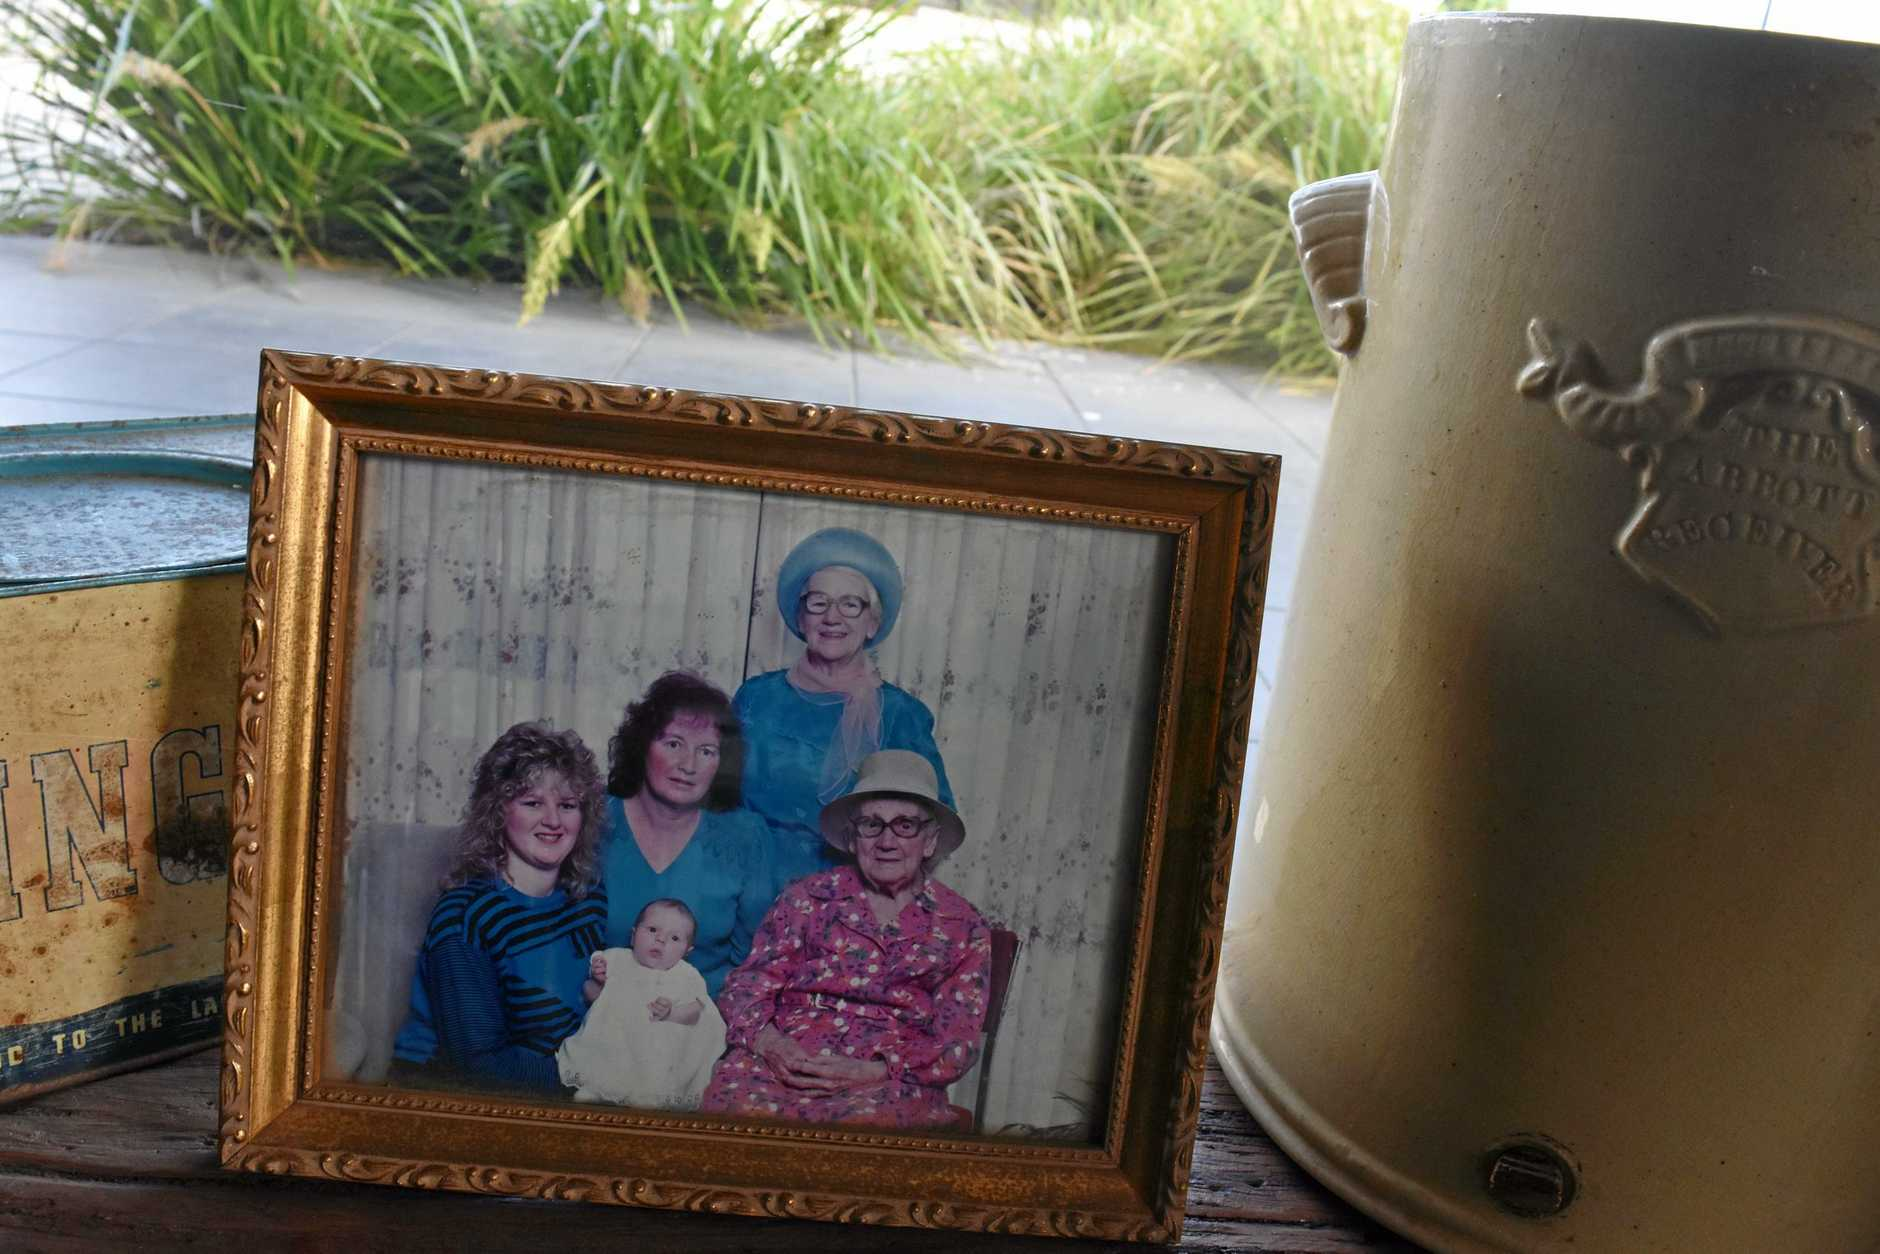 A photograph of Sharla Watson (the baby) and four generations of her family on display at the Farmer and Sun Cafe.